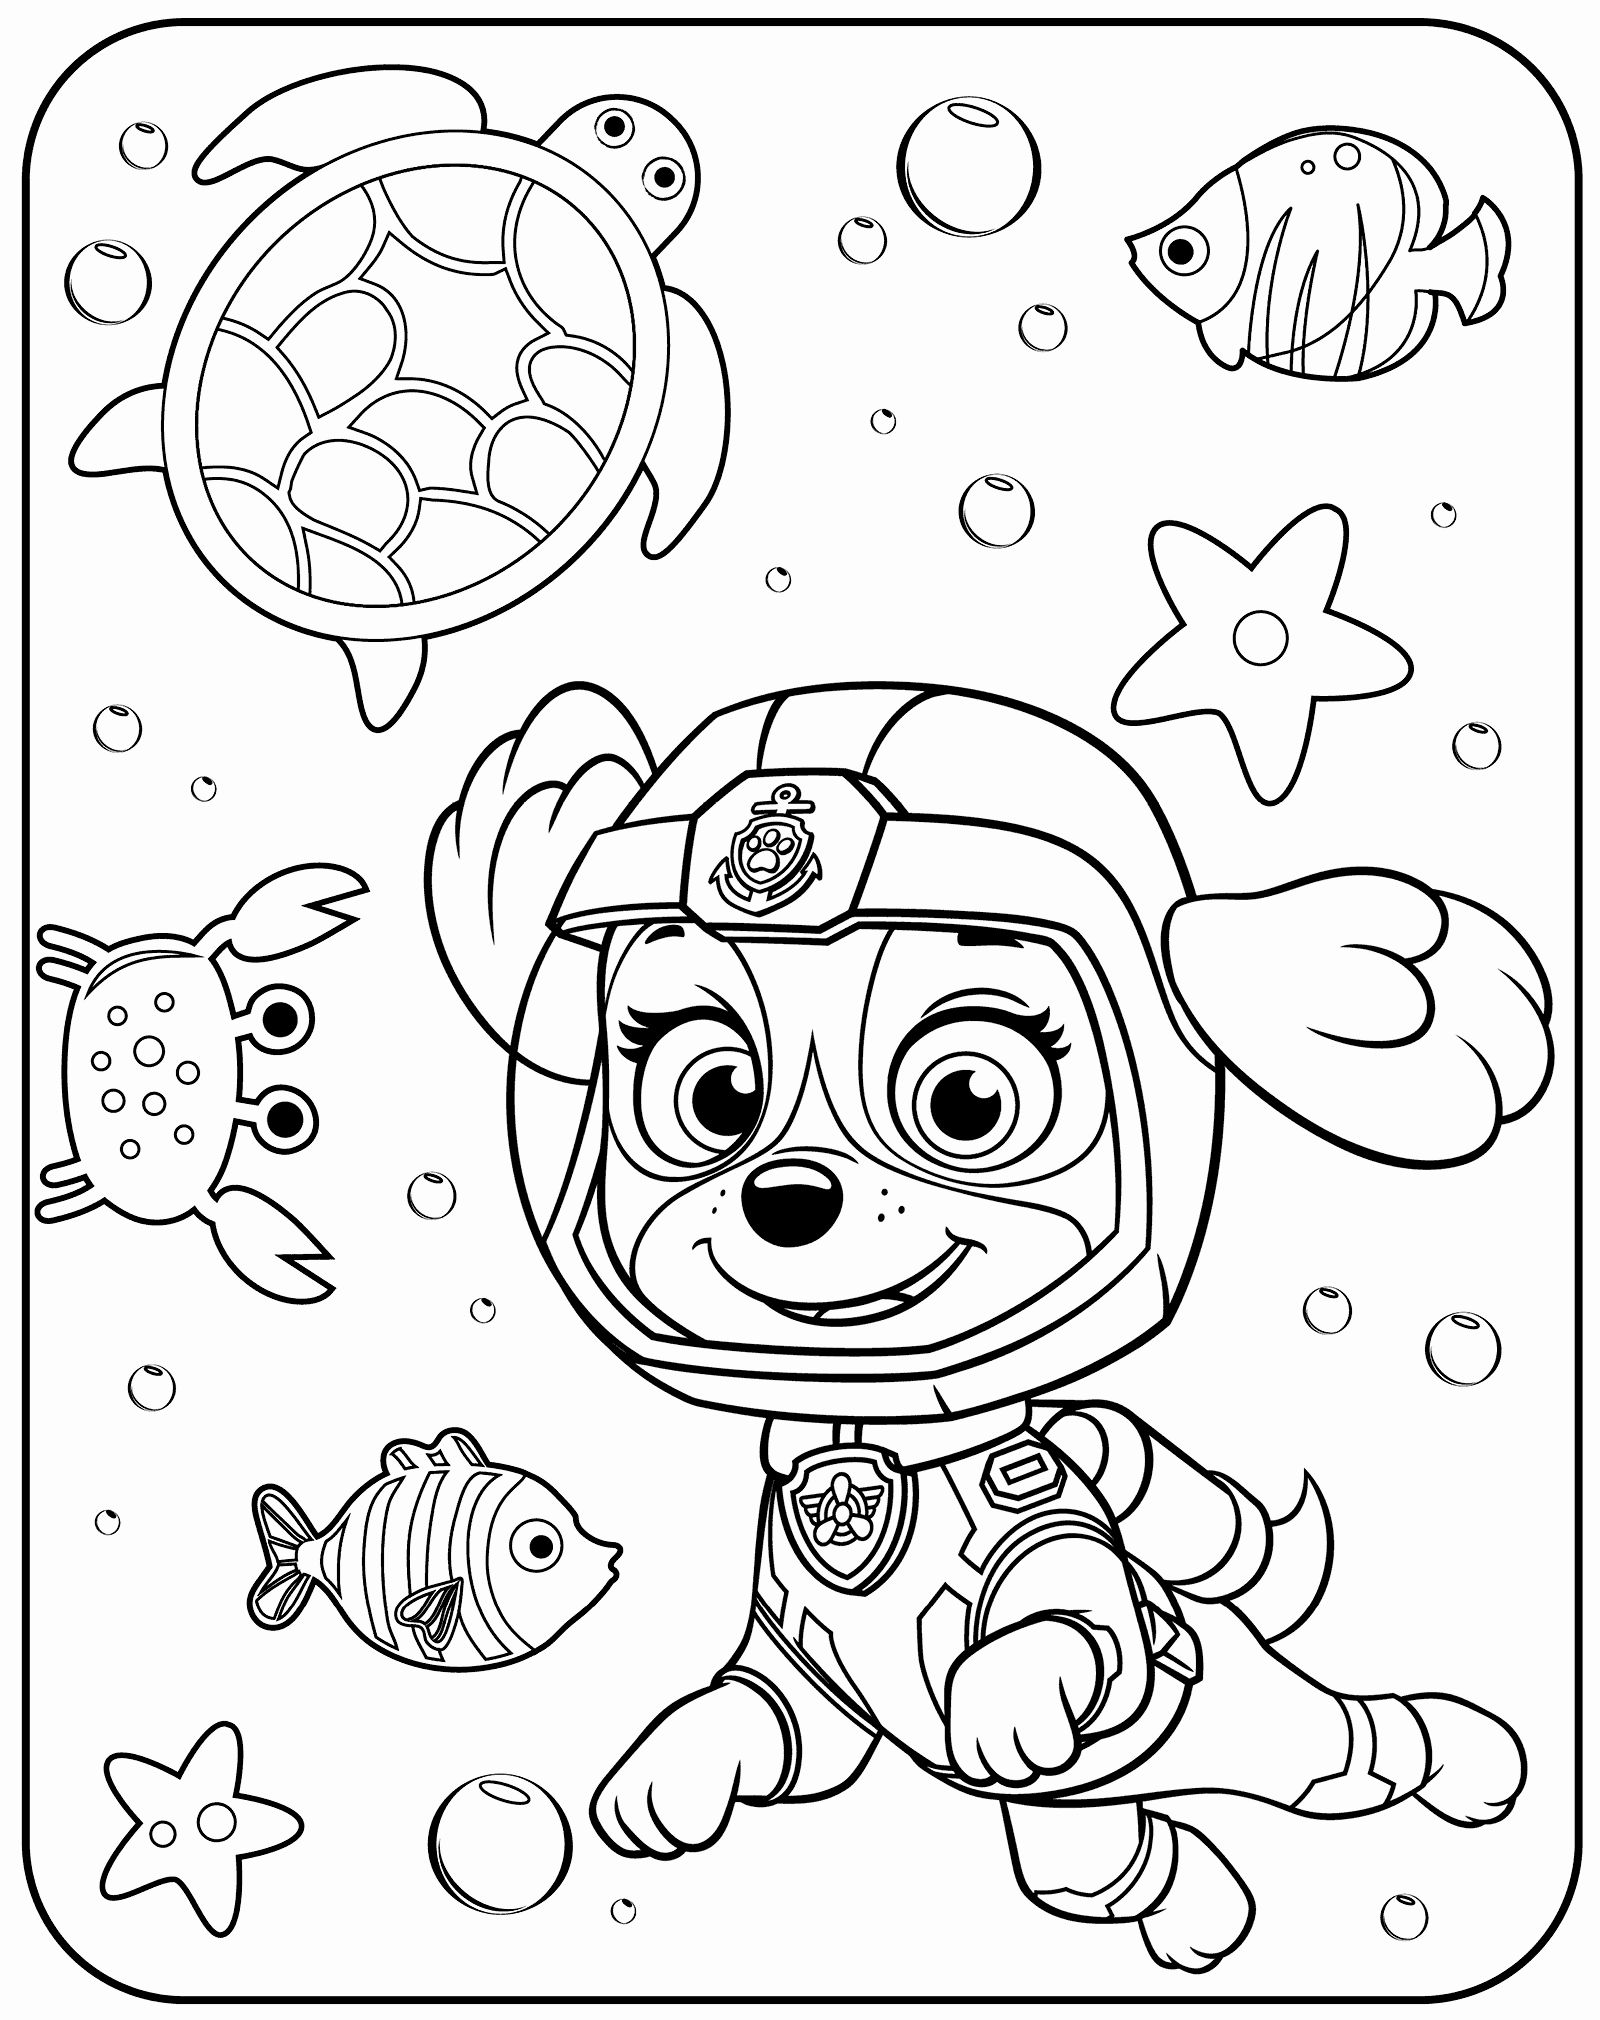 Paw Patrol Coloring Book New Free Printable Paw Patrol Coloring Pages For Kids In 2020 Paw Patrol Coloring Pages Paw Patrol Coloring Birthday Coloring Pages